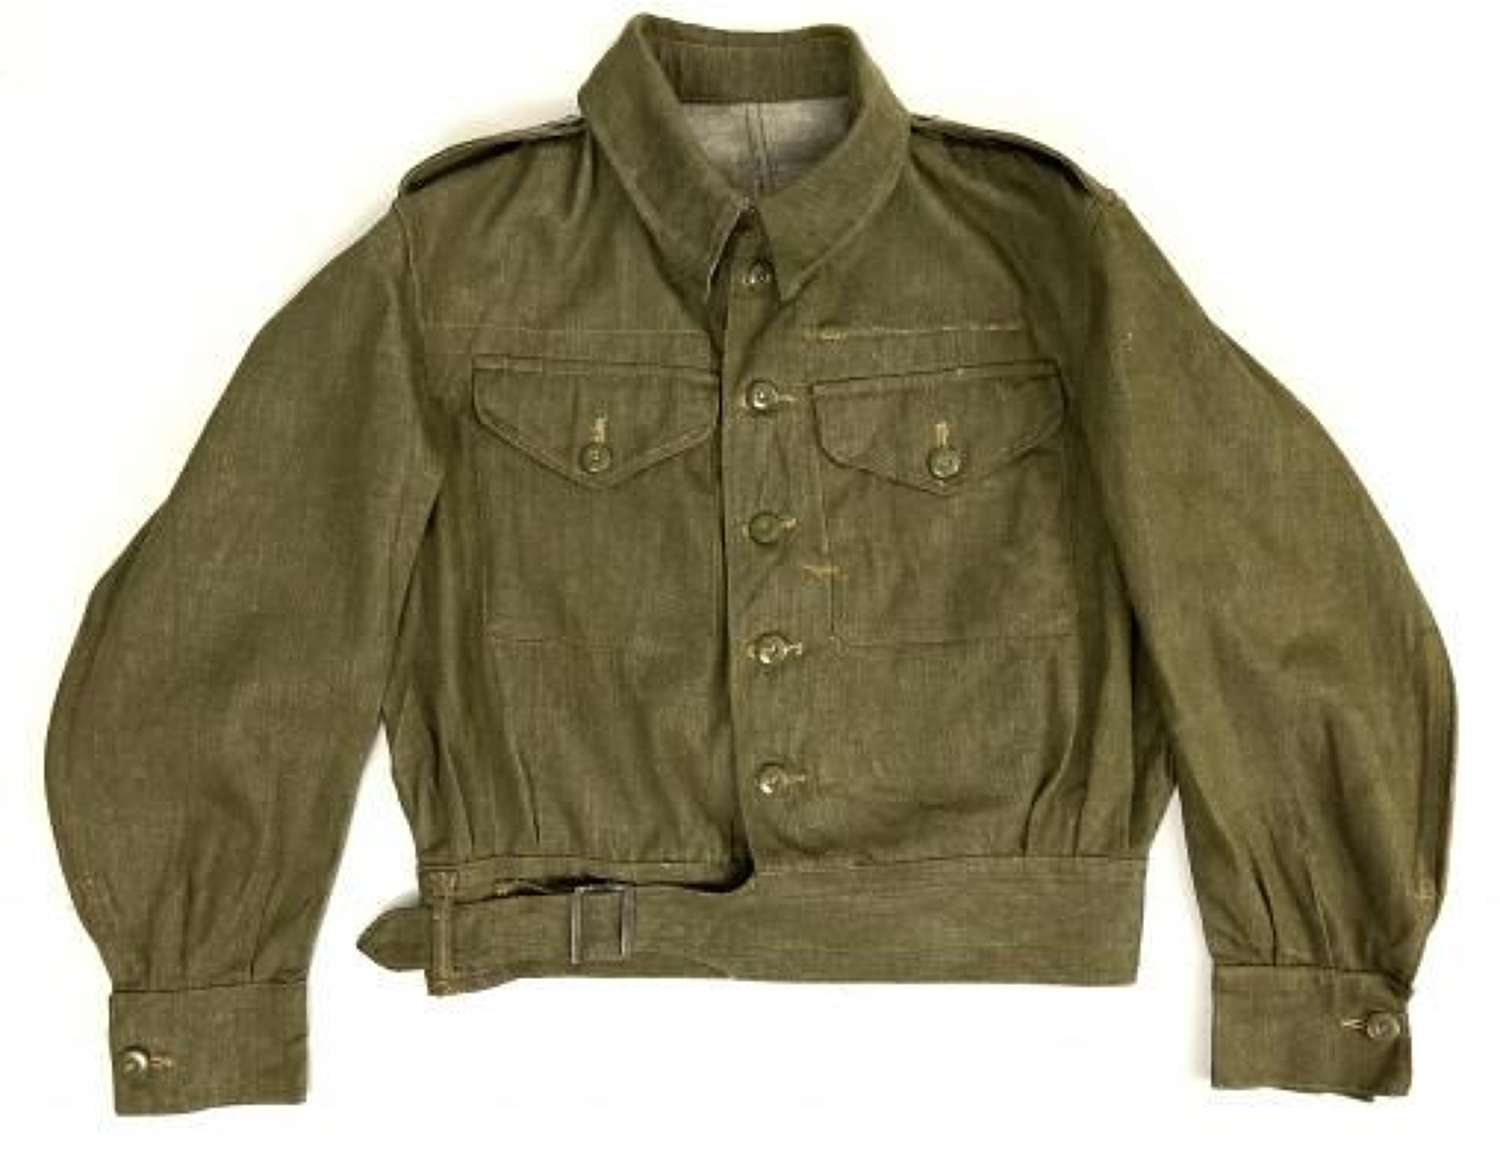 Original 1946 Dated New Old Stock British Army Denin Battledress Blouse - Size 6